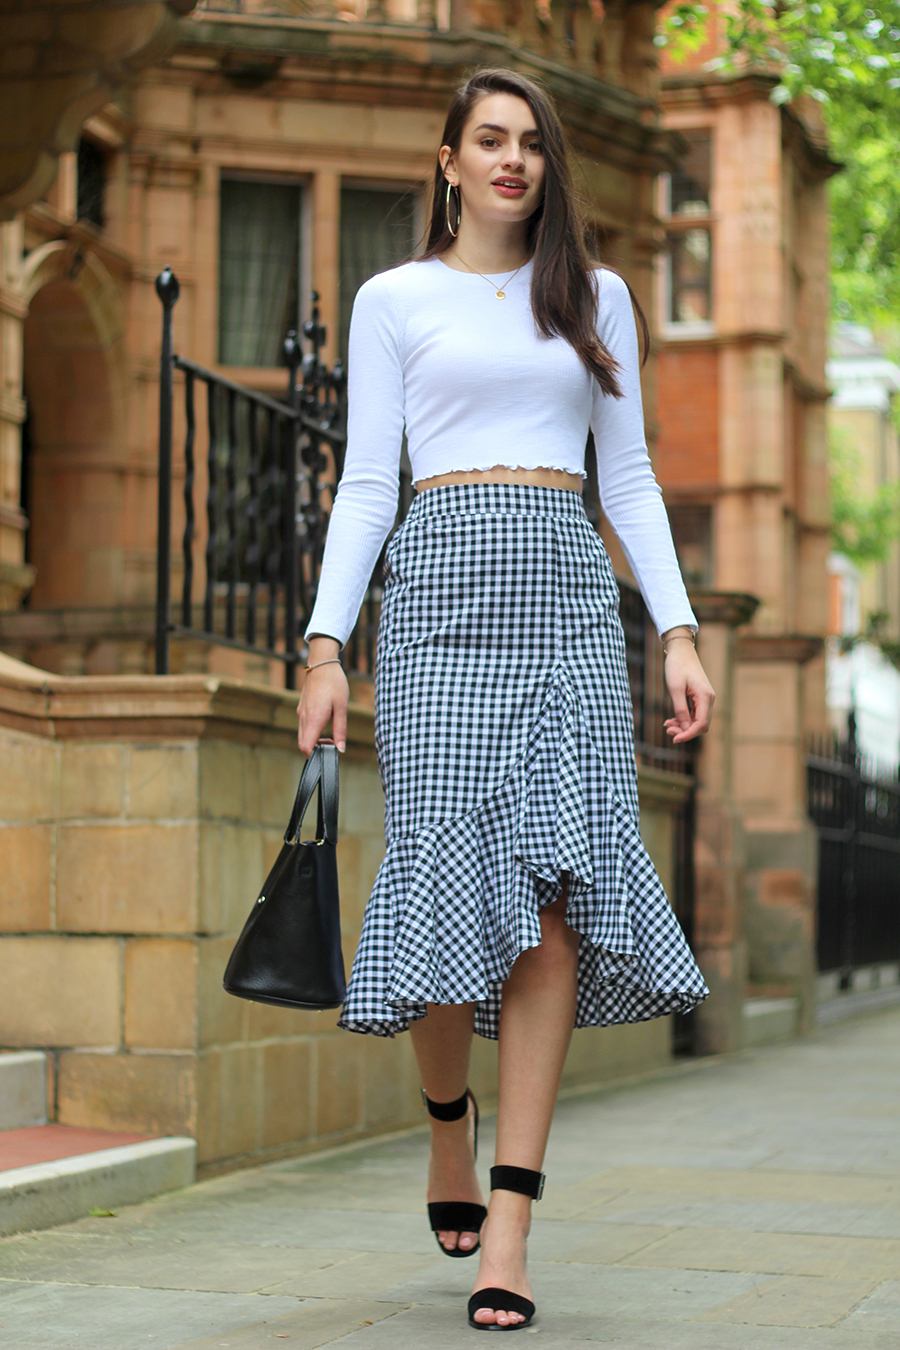 how to make a monochrome outfit stand out peexo